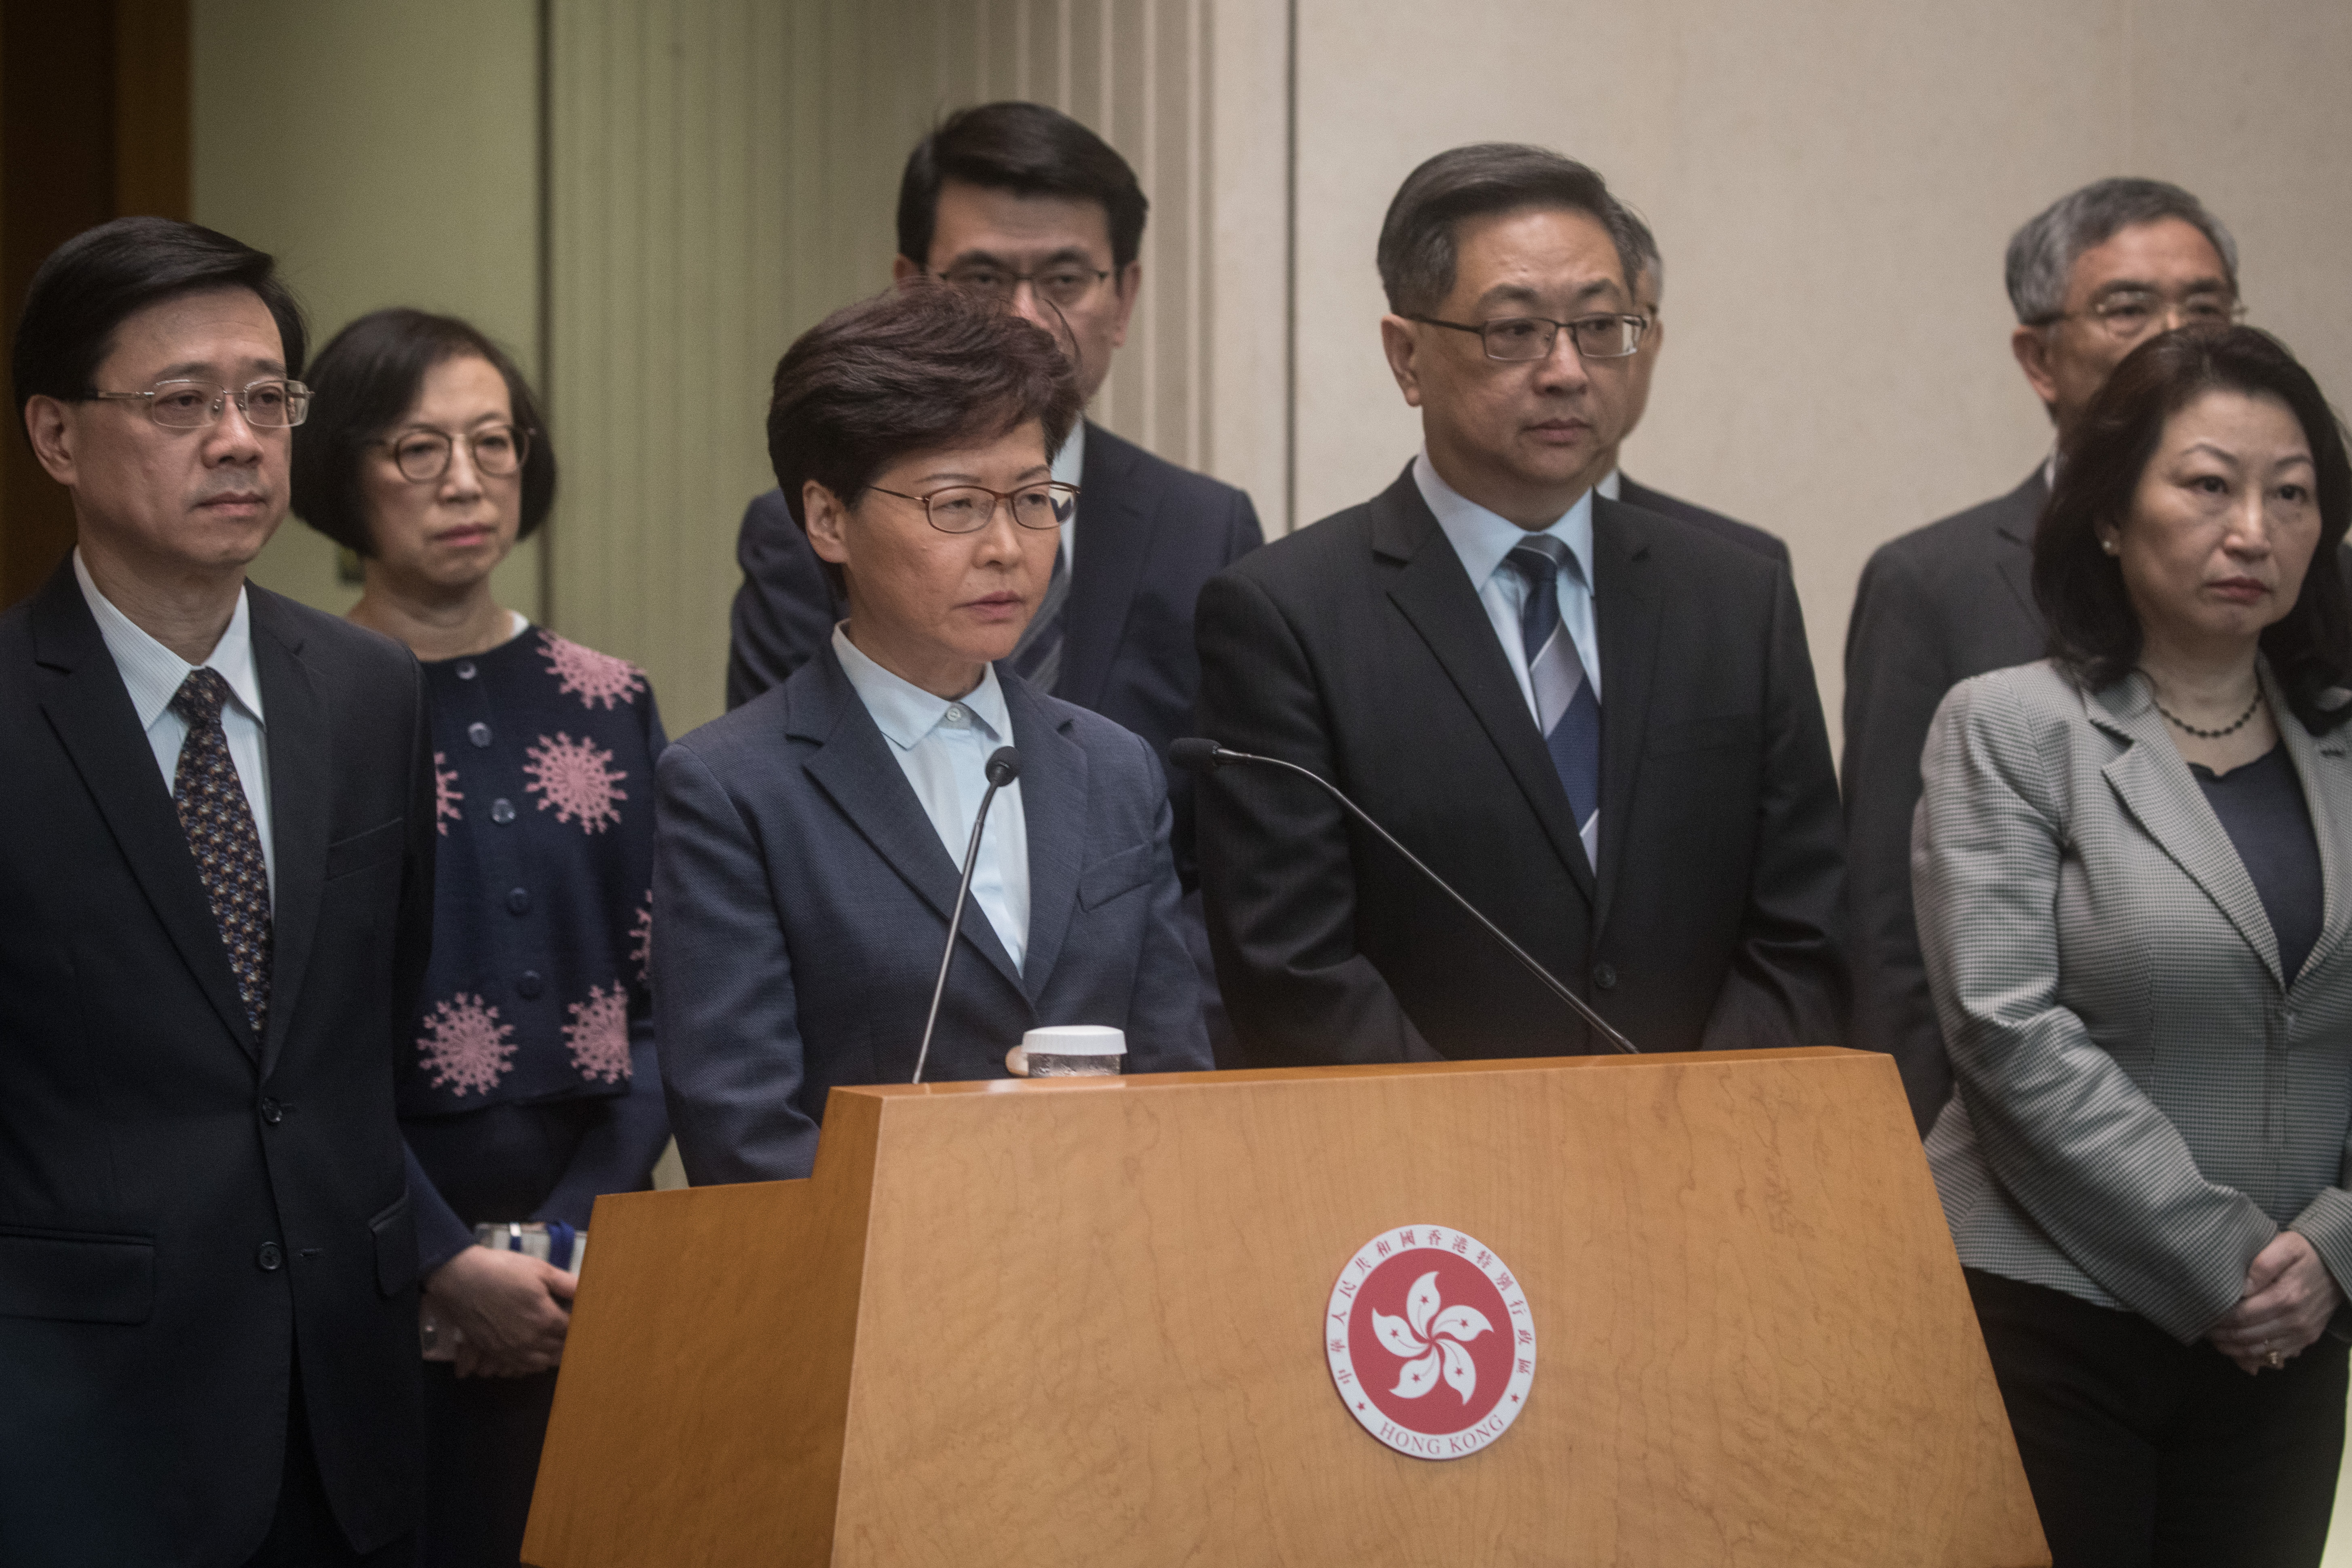 Hong Kong Chief Executive Carrie Lam speaks to the media on July 22, 2019.